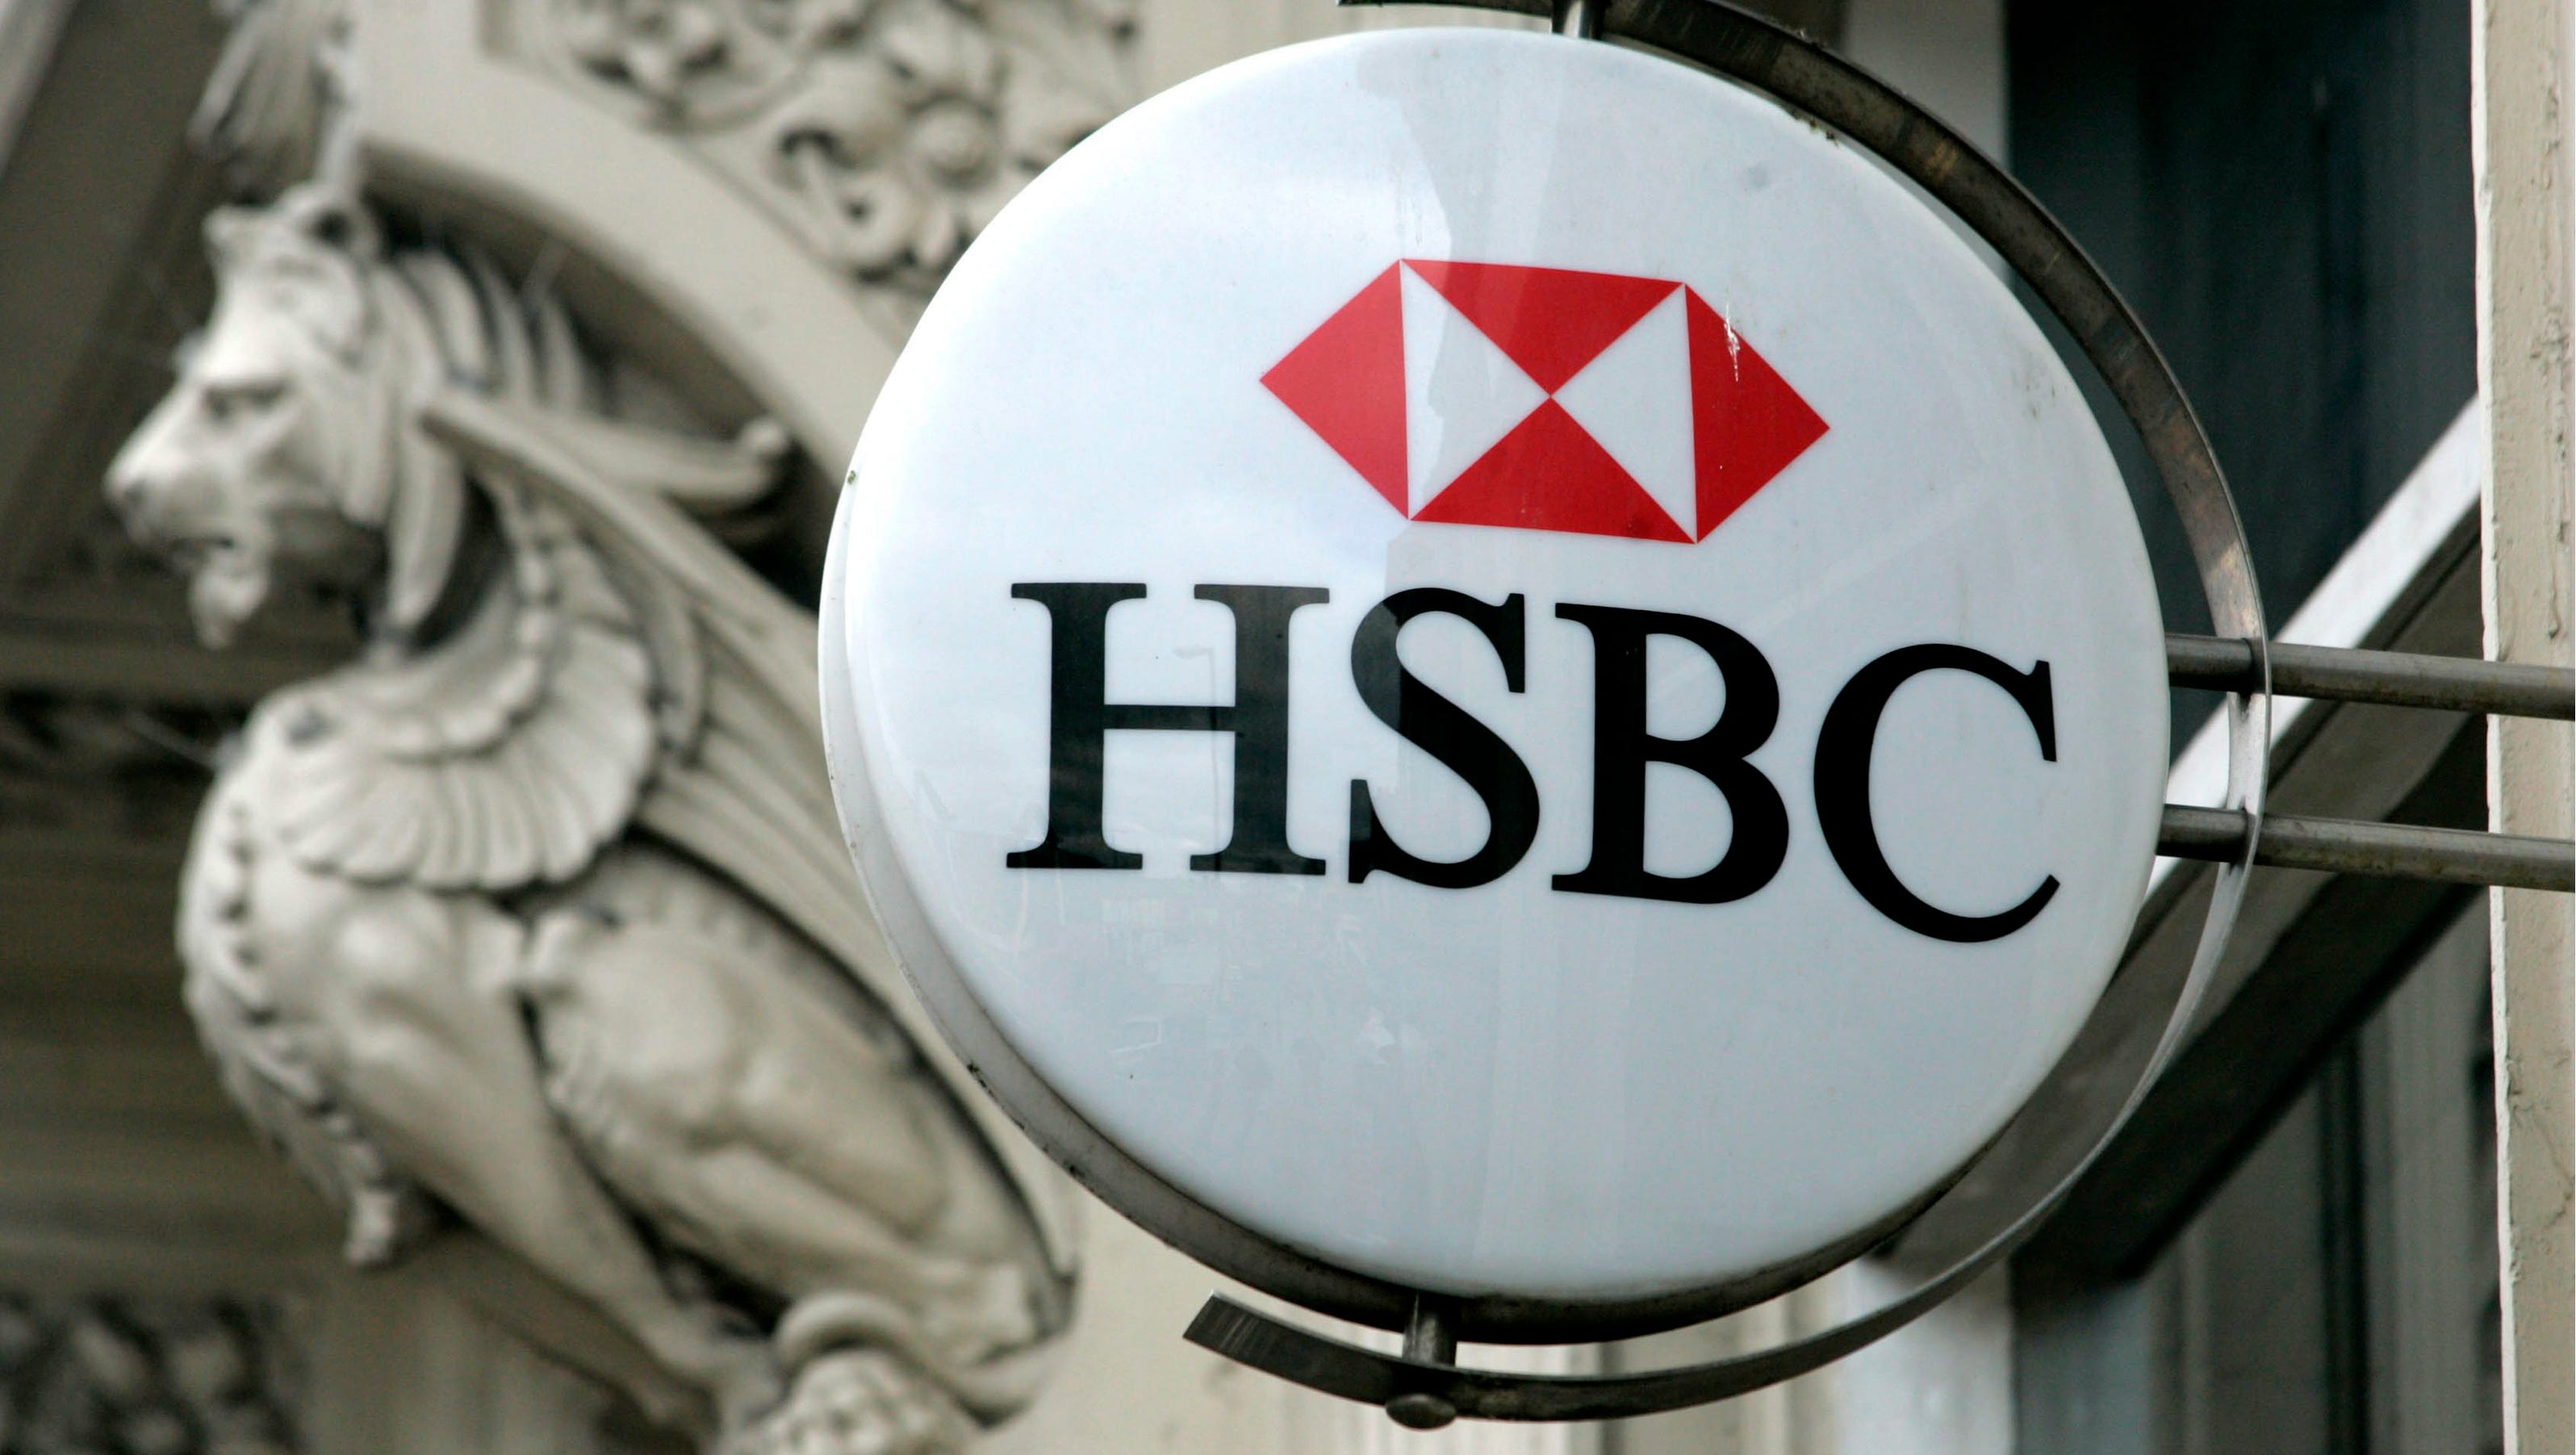 Report accuses hsbc of helping clients evade tax